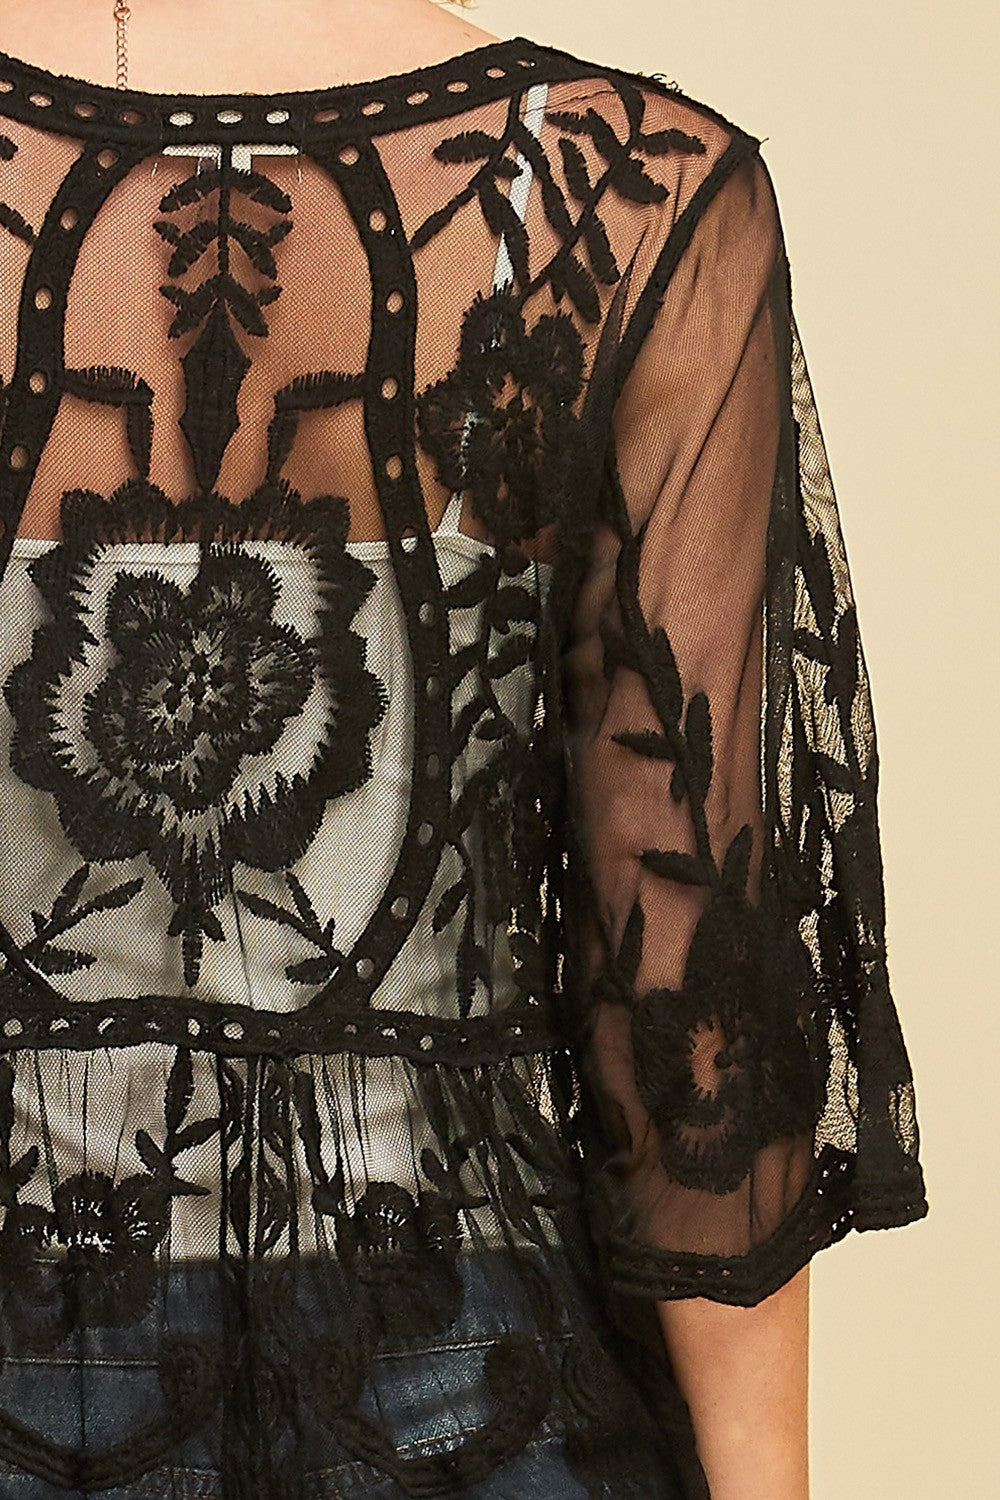 Back detail view woman wearing black empire waist tie front sheer floral embroidered kimono